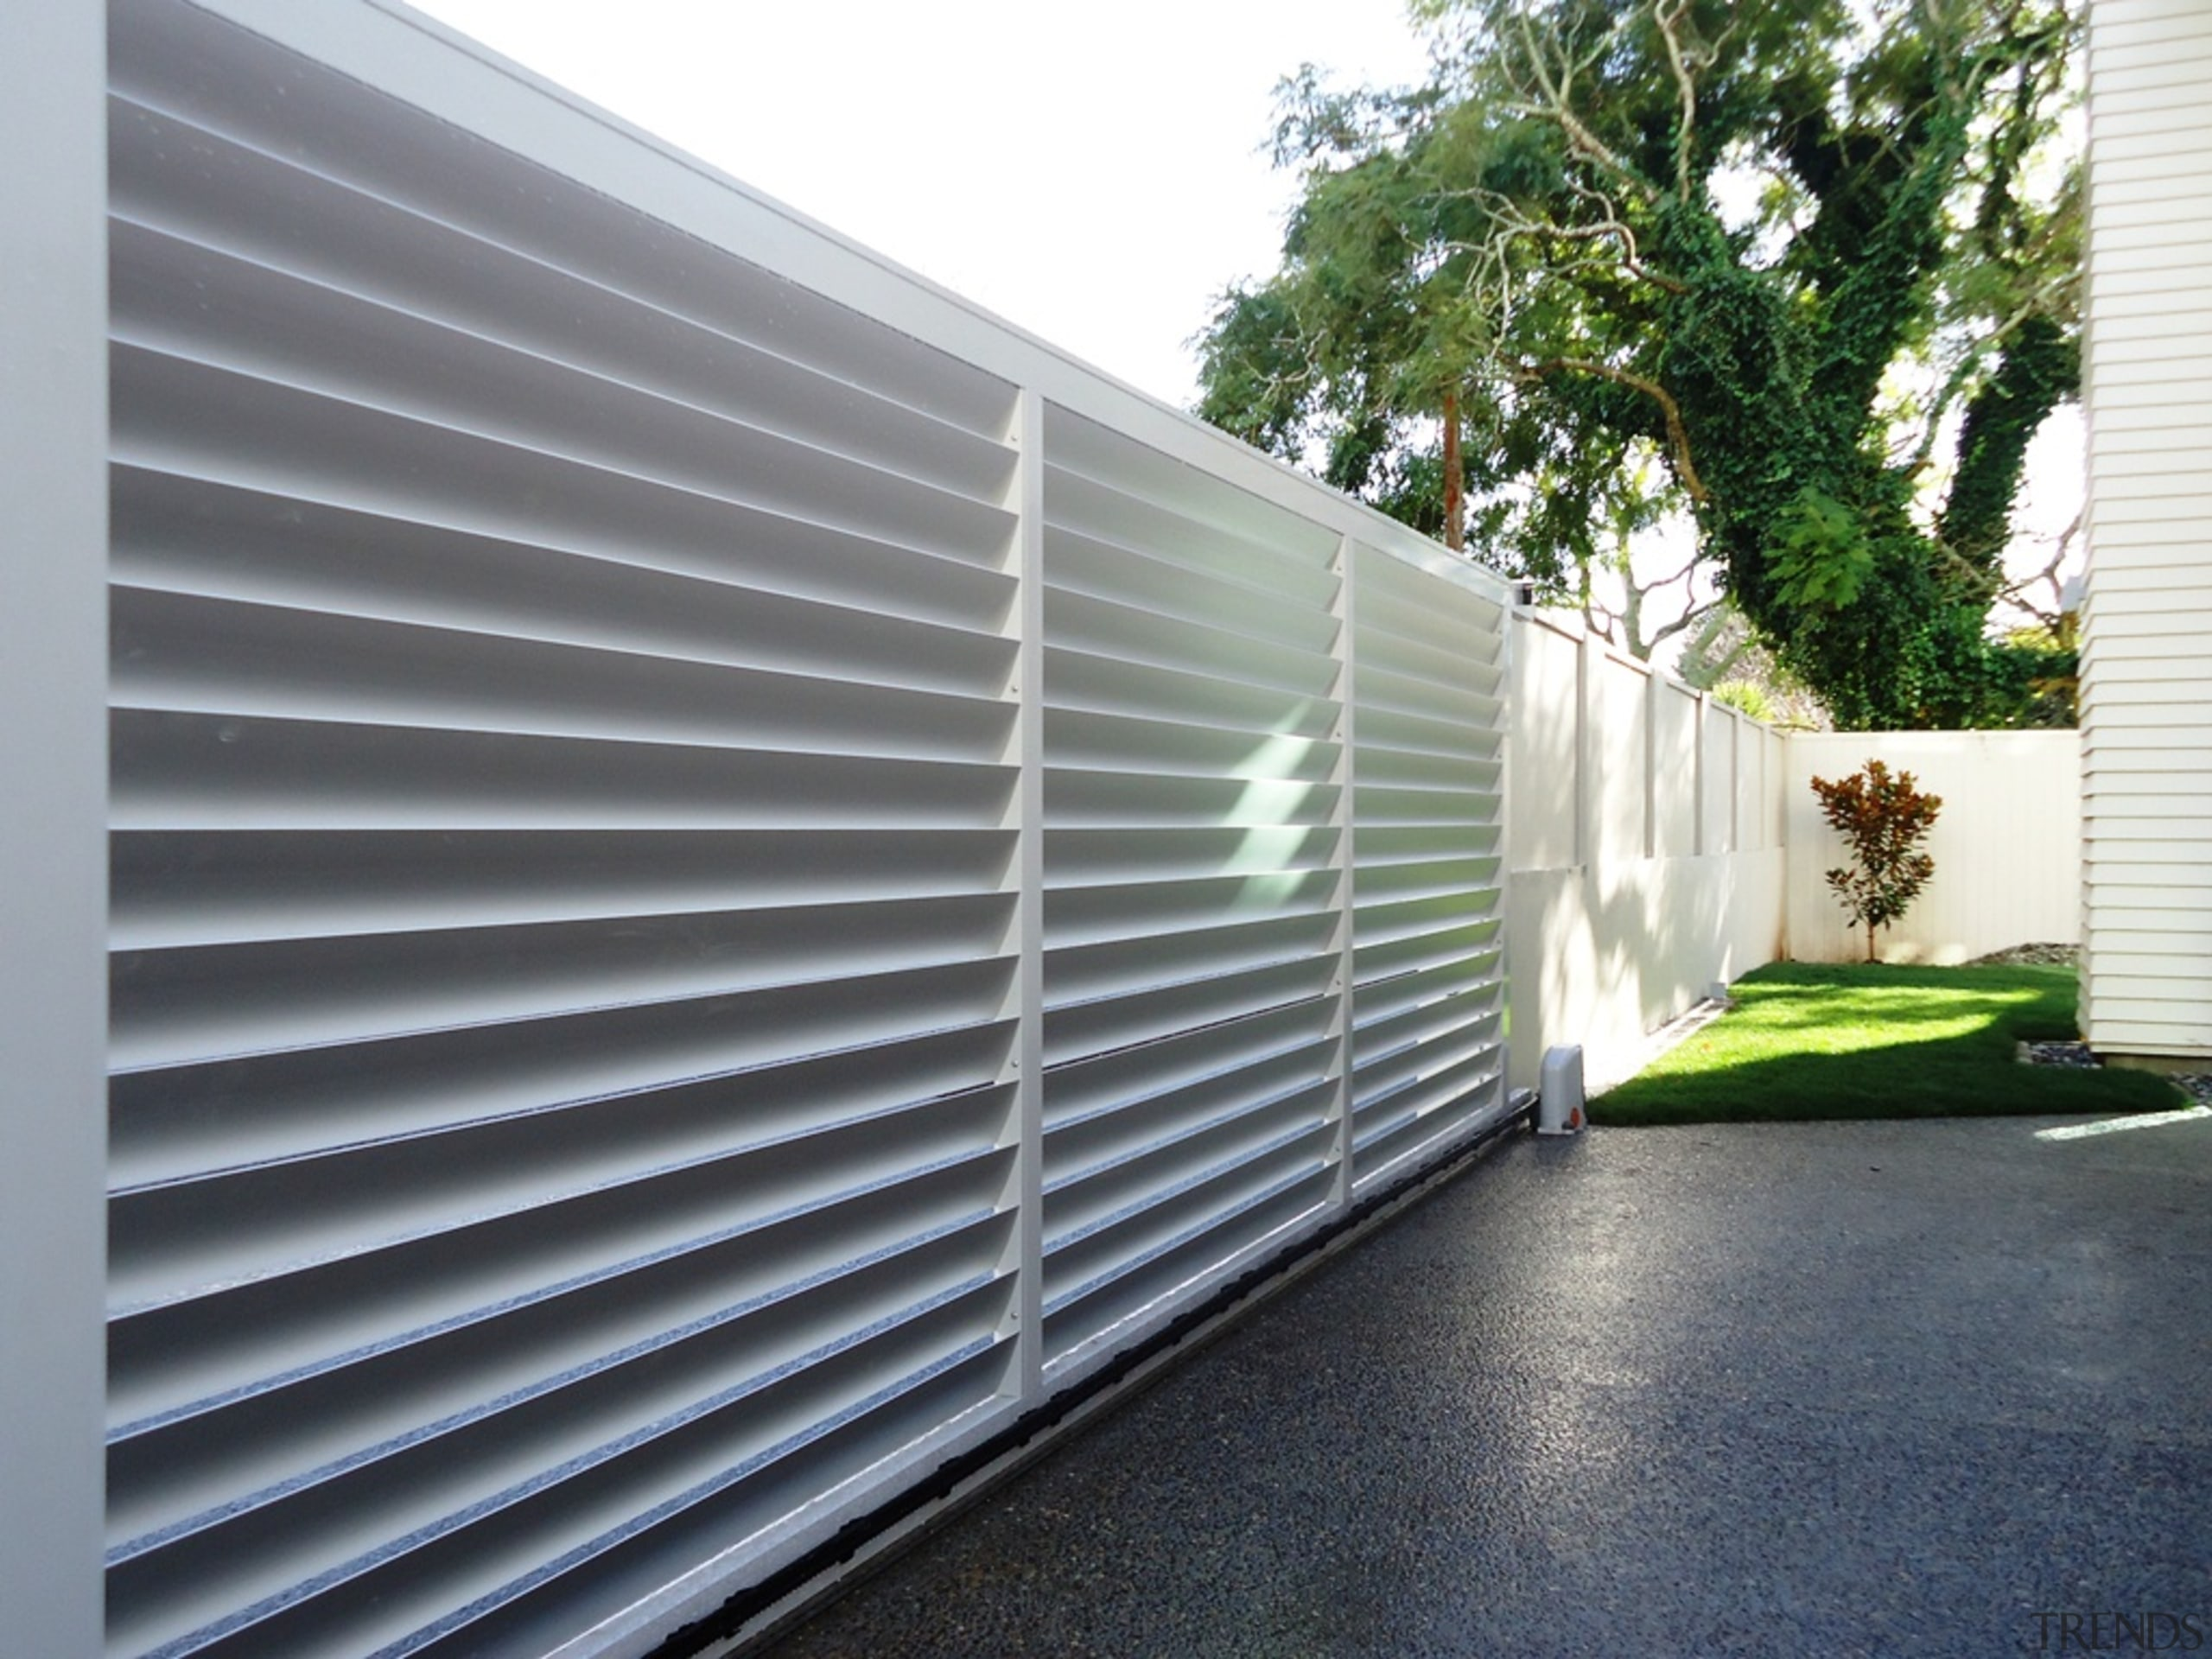 78580_louvretec-new-zealand-ltd_1556758015 - architecture   building   daylighting   architecture, building, daylighting, facade, fence, house, material property, metal, property, real estate, shade, siding, wall, window, gray